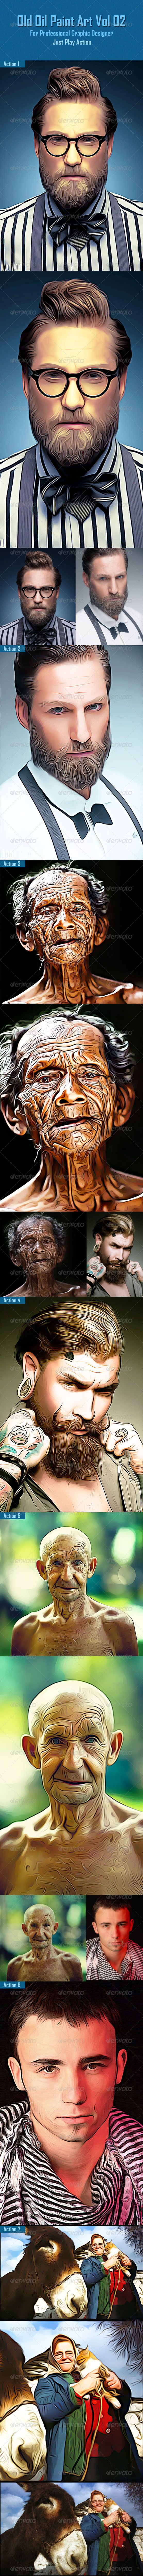 GraphicRiver Old Oil Paint Art Vol 02 8494984